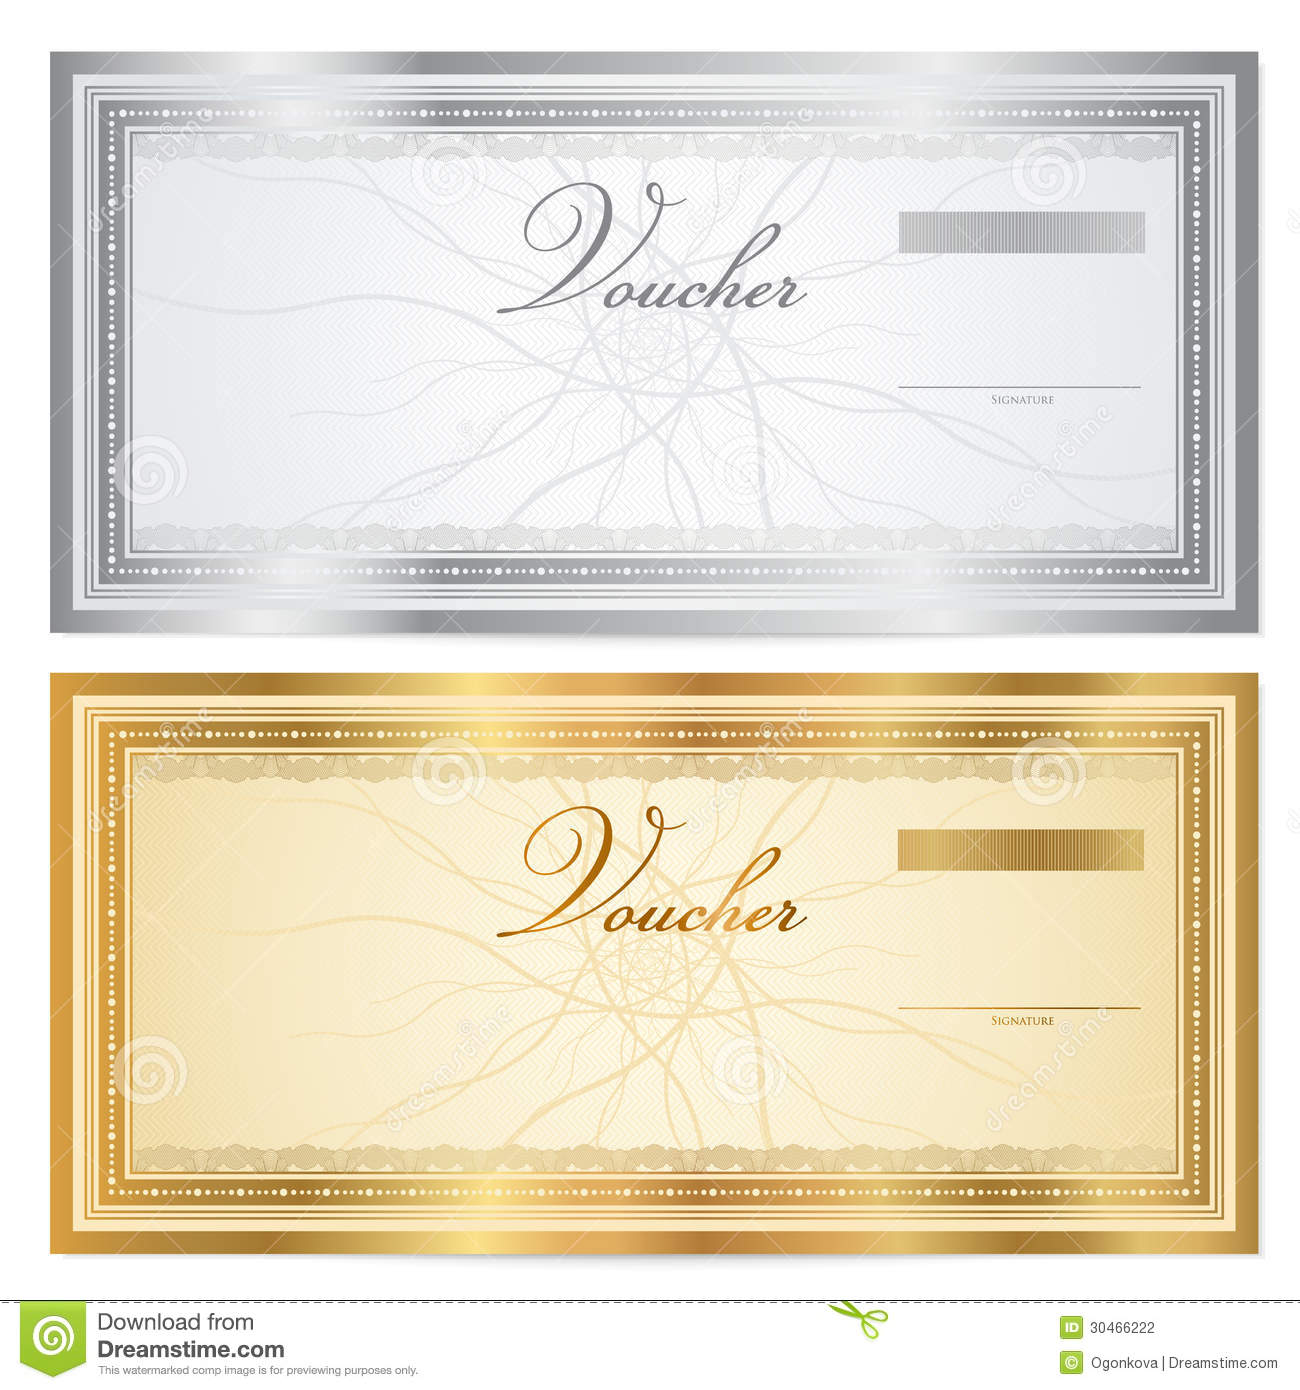 coupon format invoice template receipt template certificate logo stage logo gallery for logo lovers coupon maker vintage voucher coupon template border guilloche